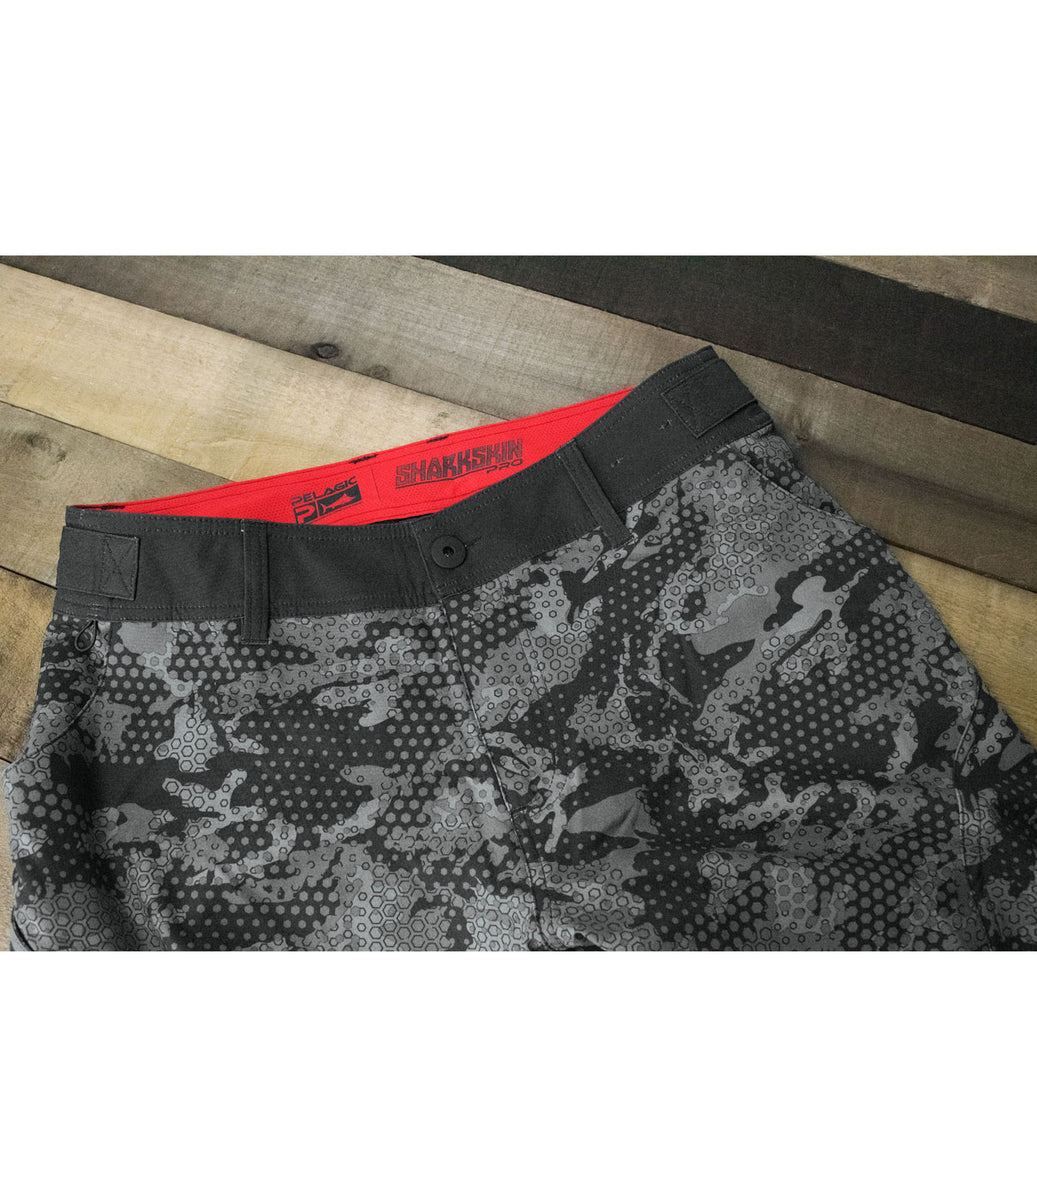 Sharkskin Pro Fishing Shorts Big Image - 5